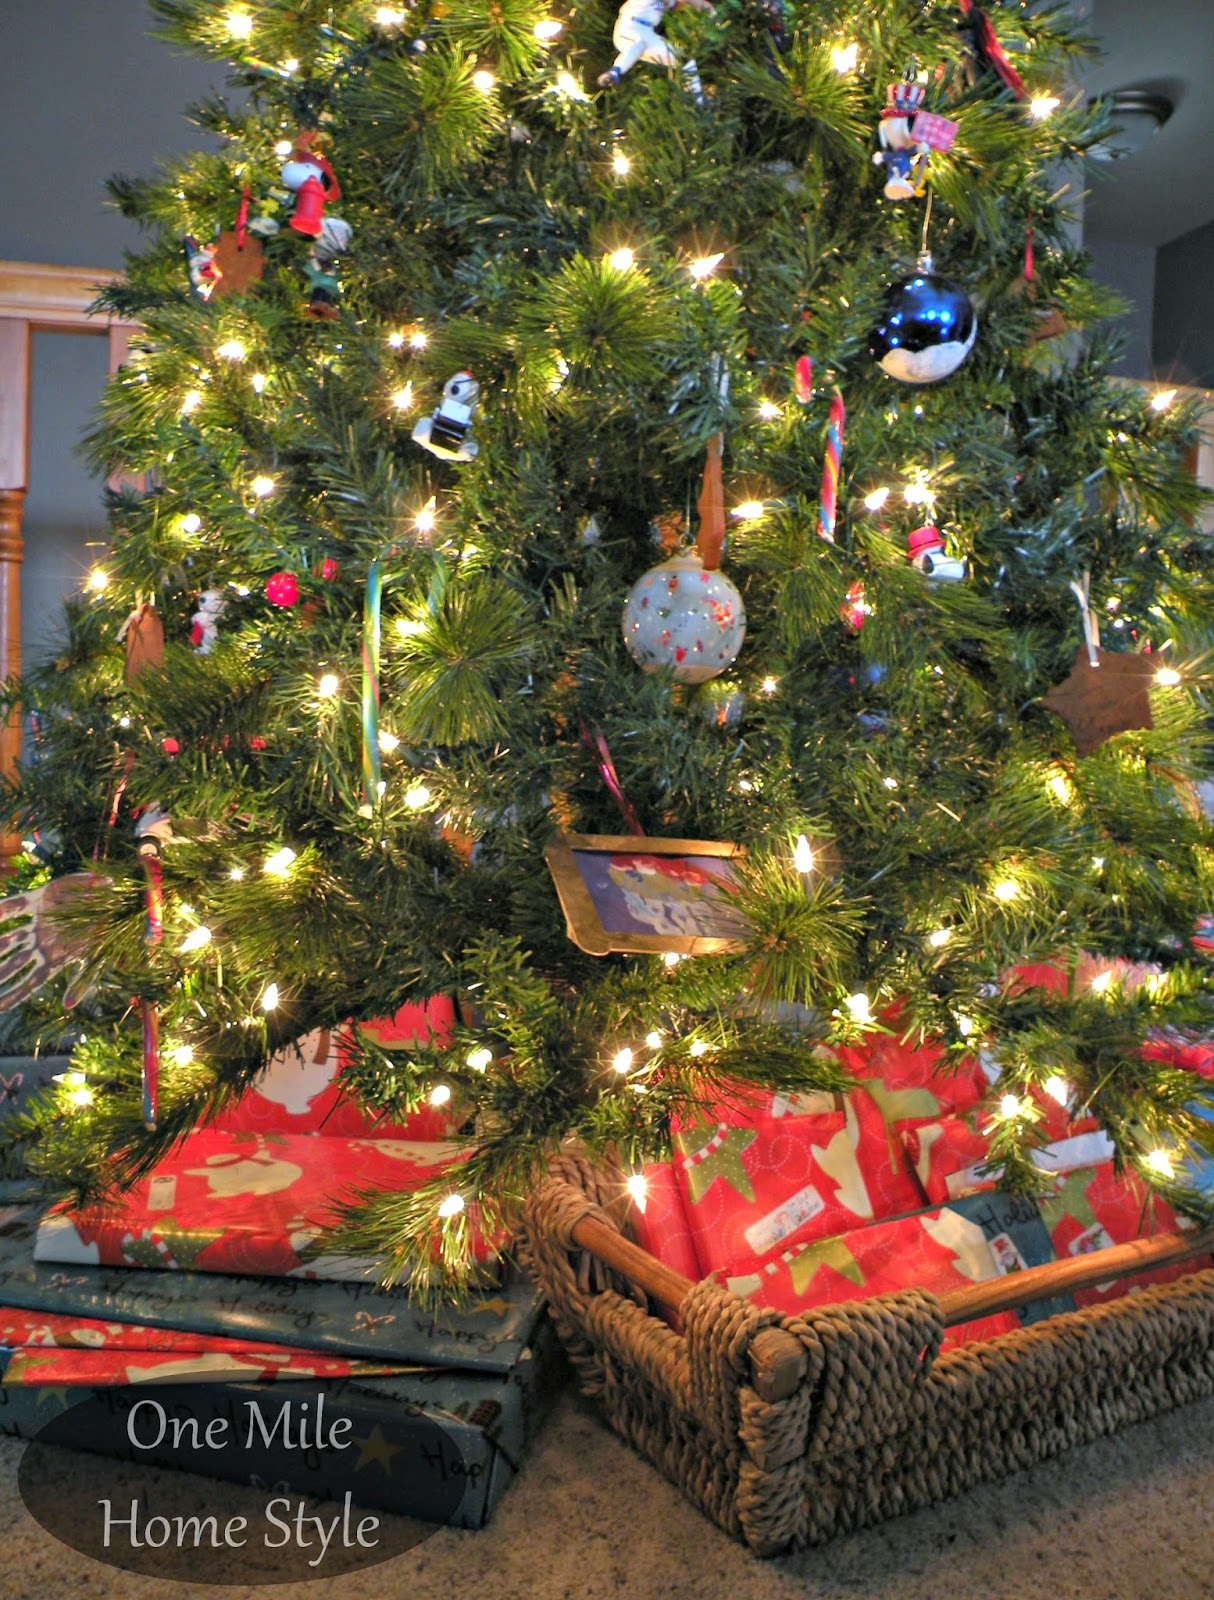 One Mile Home Style Christmas Tree 2014 - Using a basket to hold small gifts under the tree